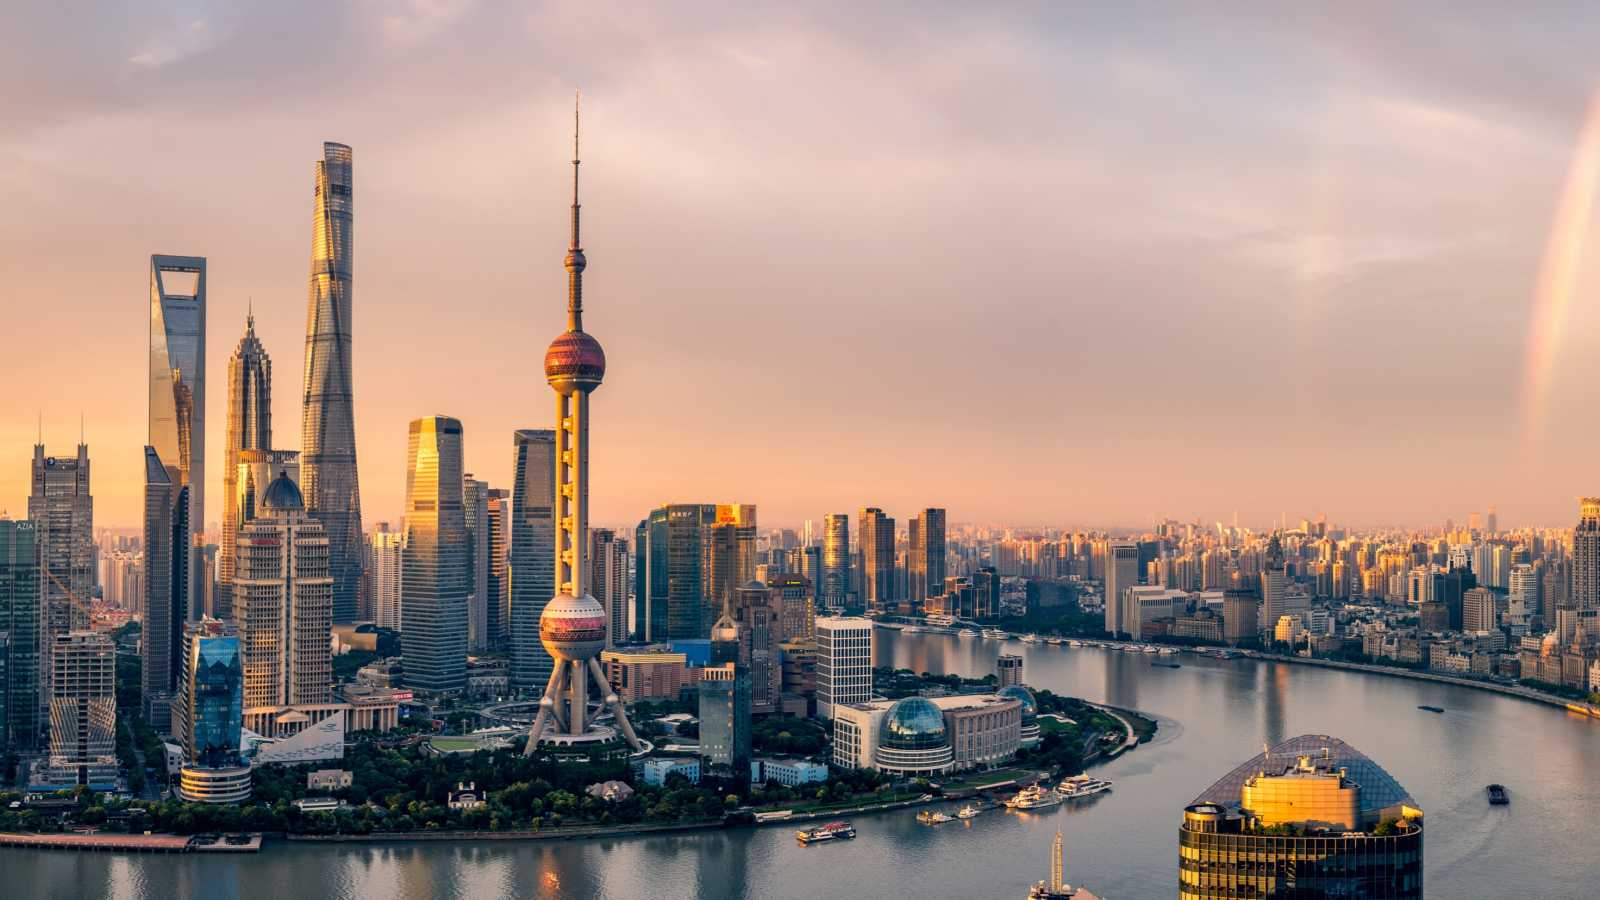 Skyline_of_Shanghai_with_Huangppu_China